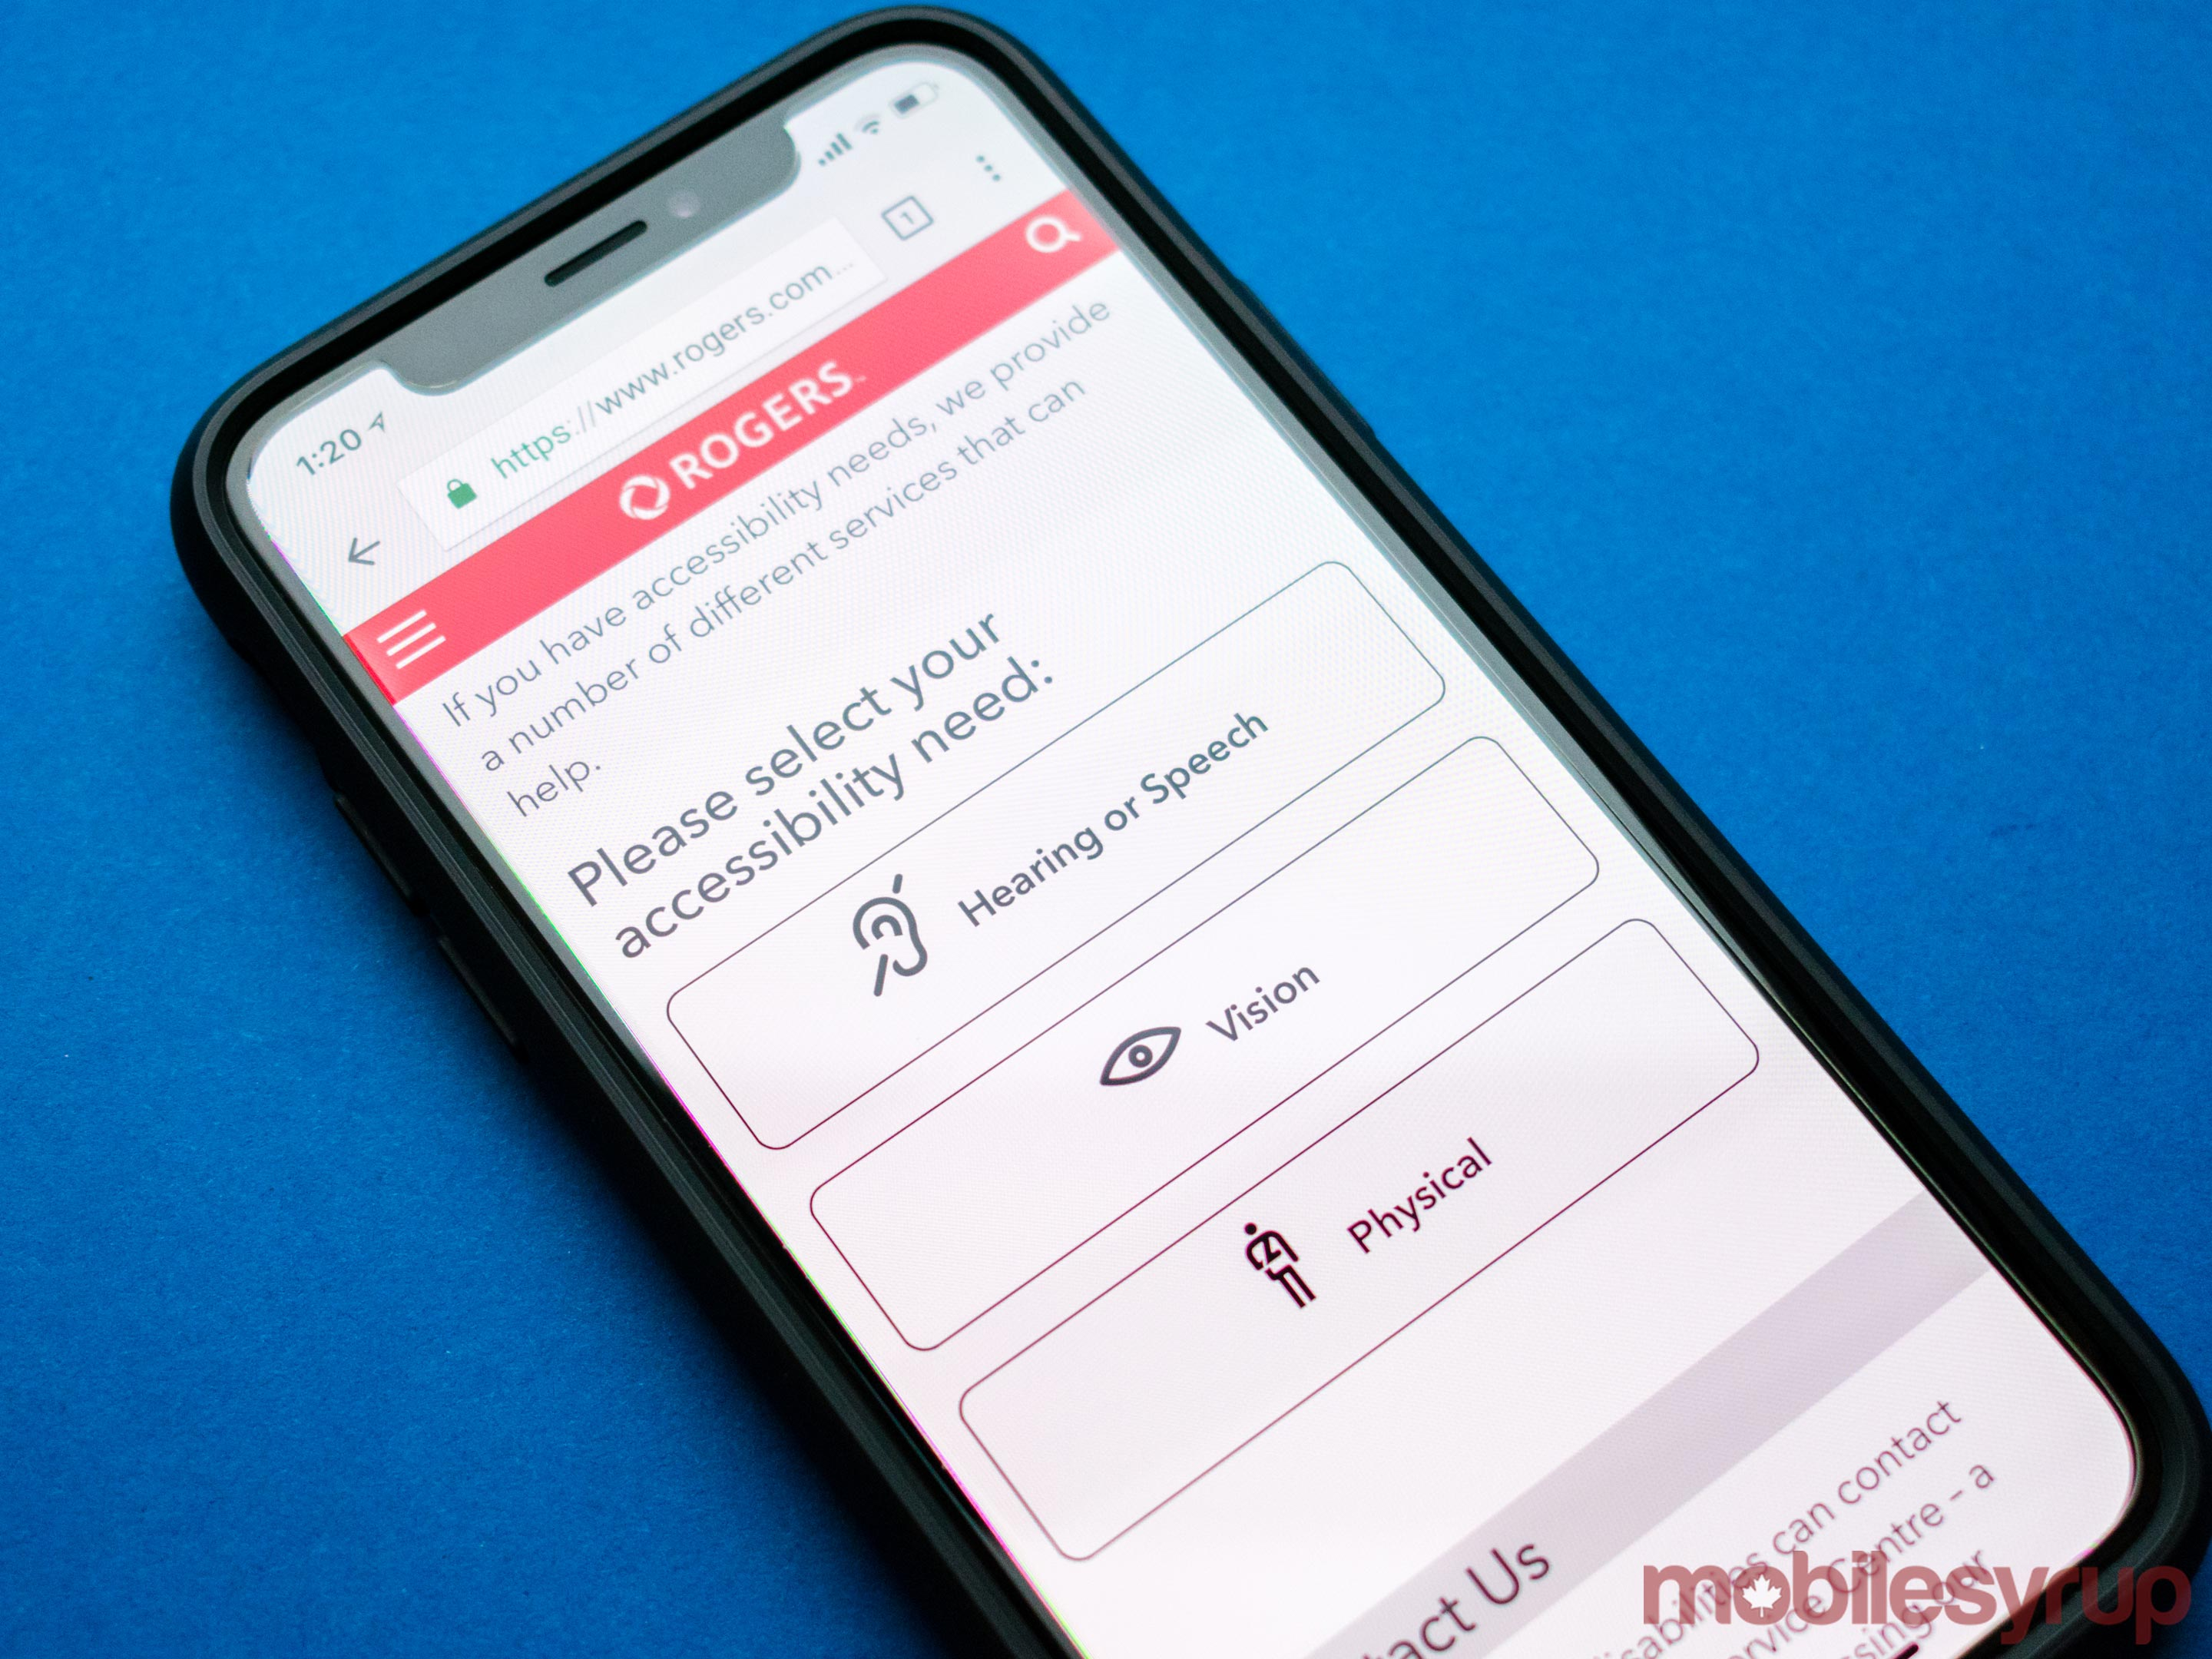 The Rogers Wireless accessibility services page on an iPhone X